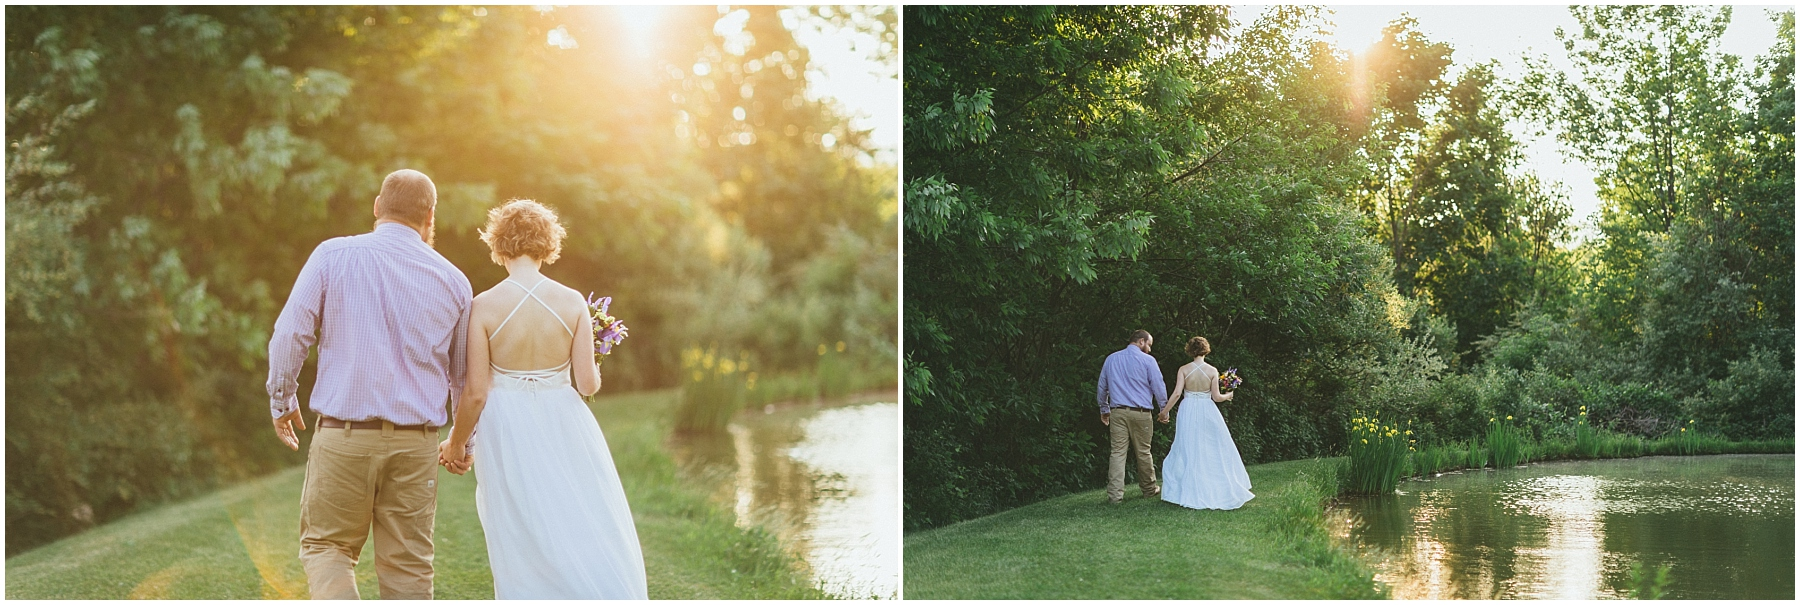 fingerlakesweddingphotography_0386.jpg